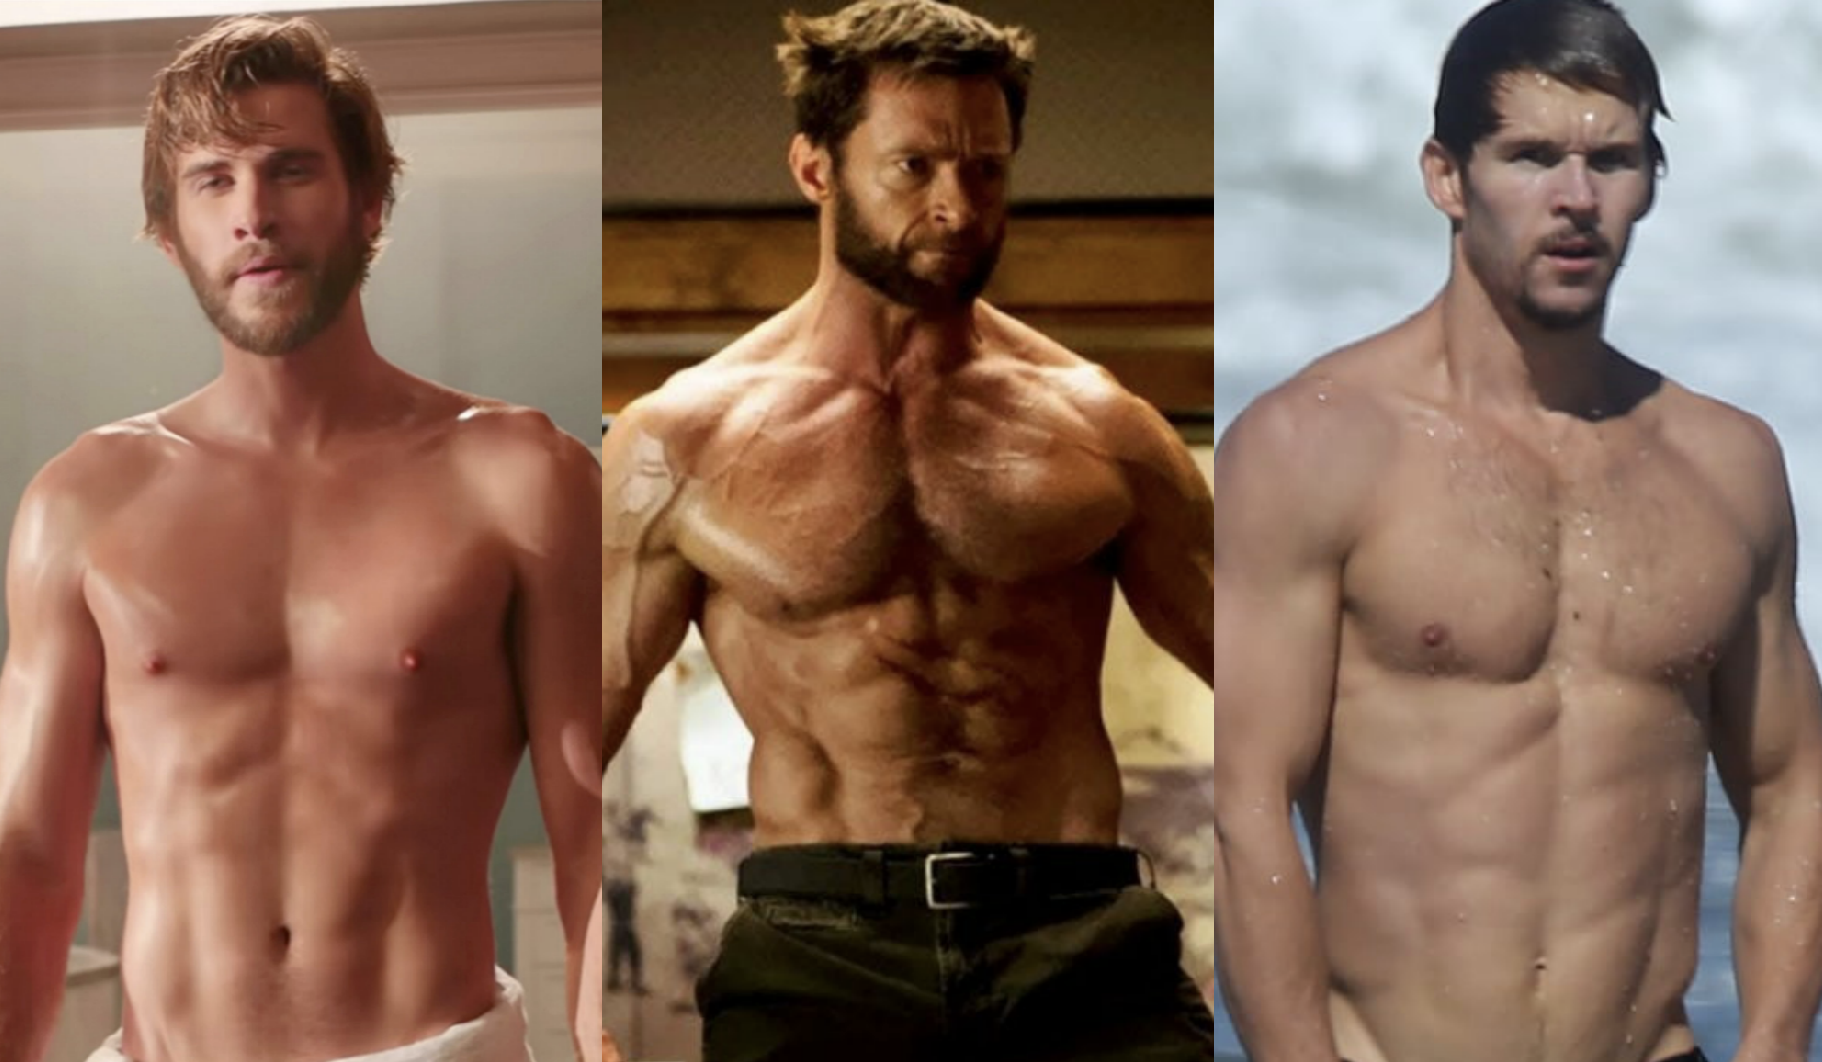 Naked Male Actors nsfw: explore down under with the hottest aussie actors